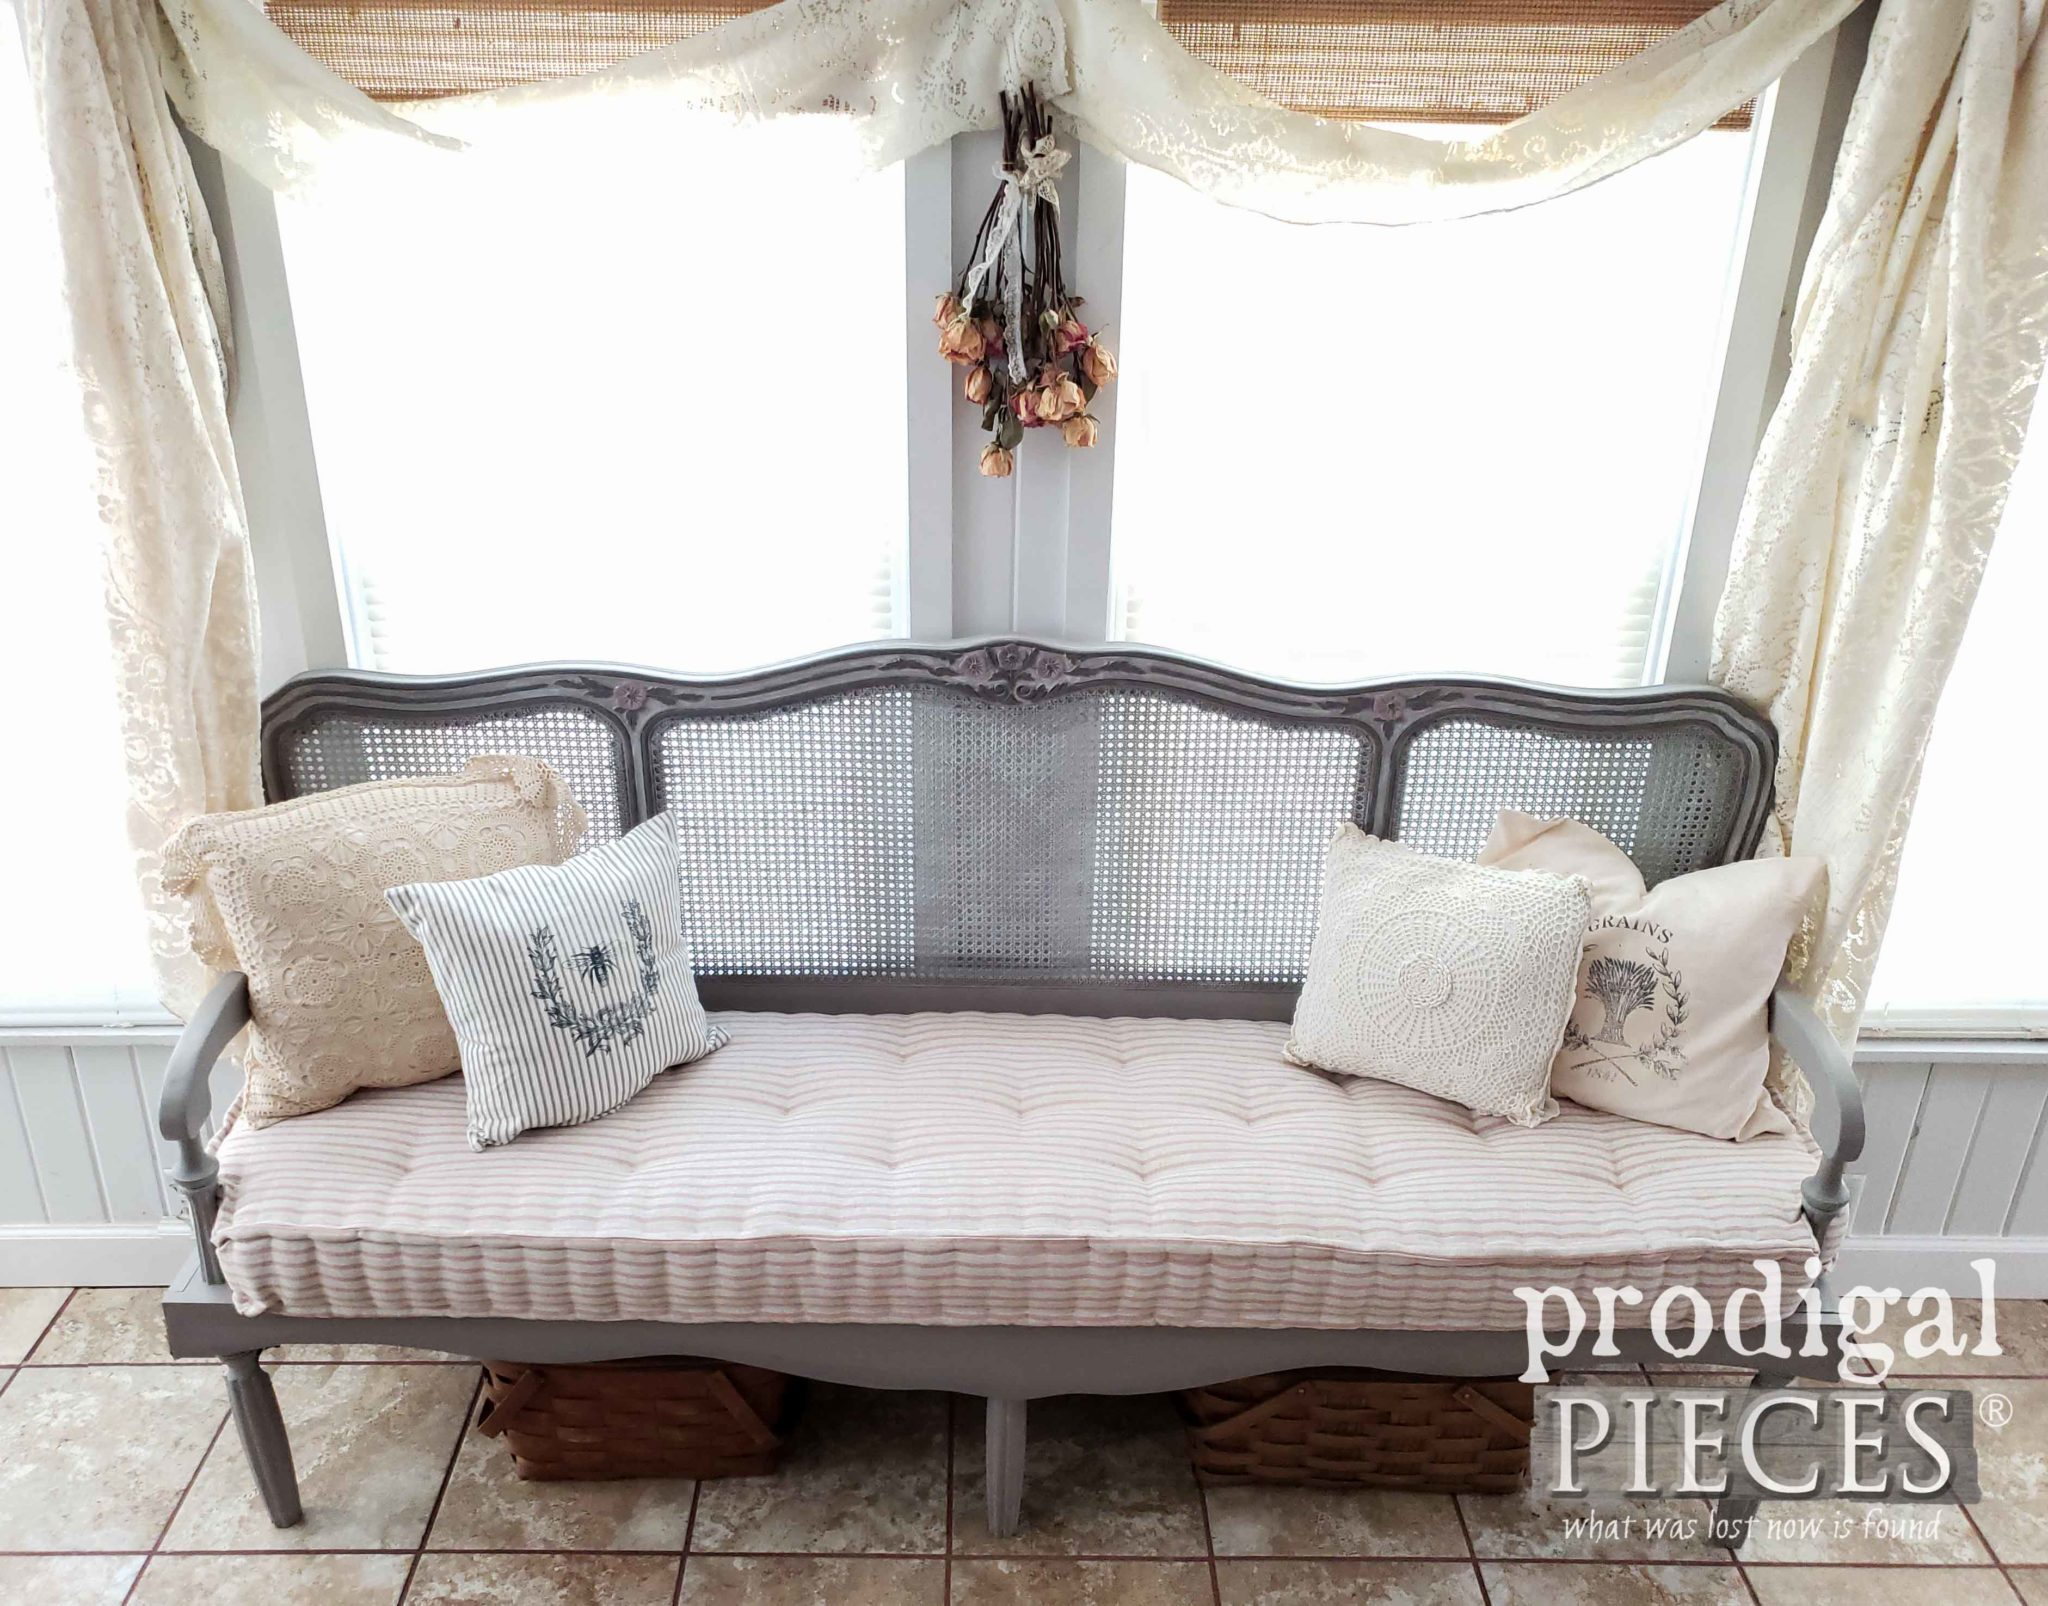 DIY Tufted French Mattress on Custom Headboard Bench Made by Larissa of Prodigal Pieces | prodigalpieces.com